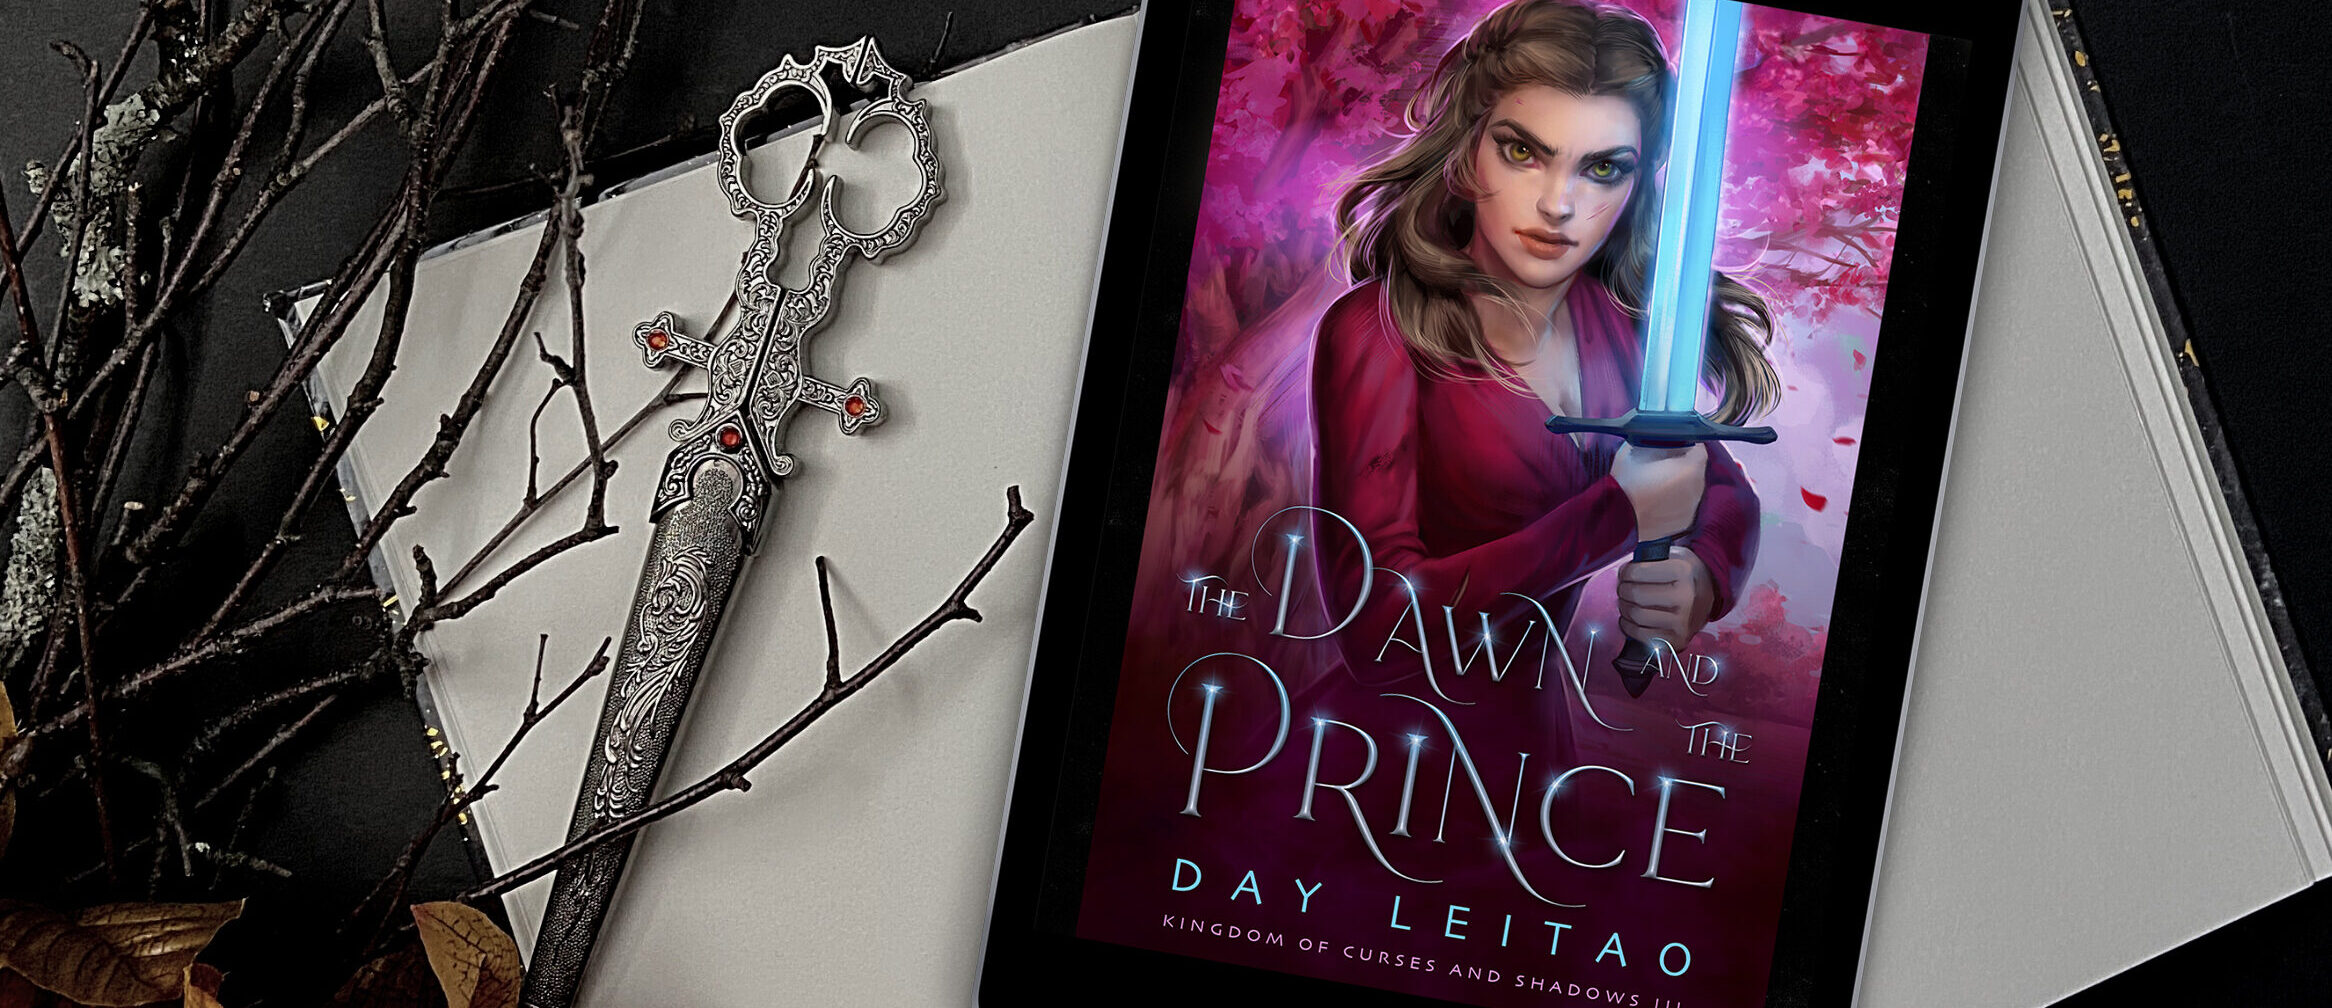 The Dawn and the Prince Cover Reveal + giveaway